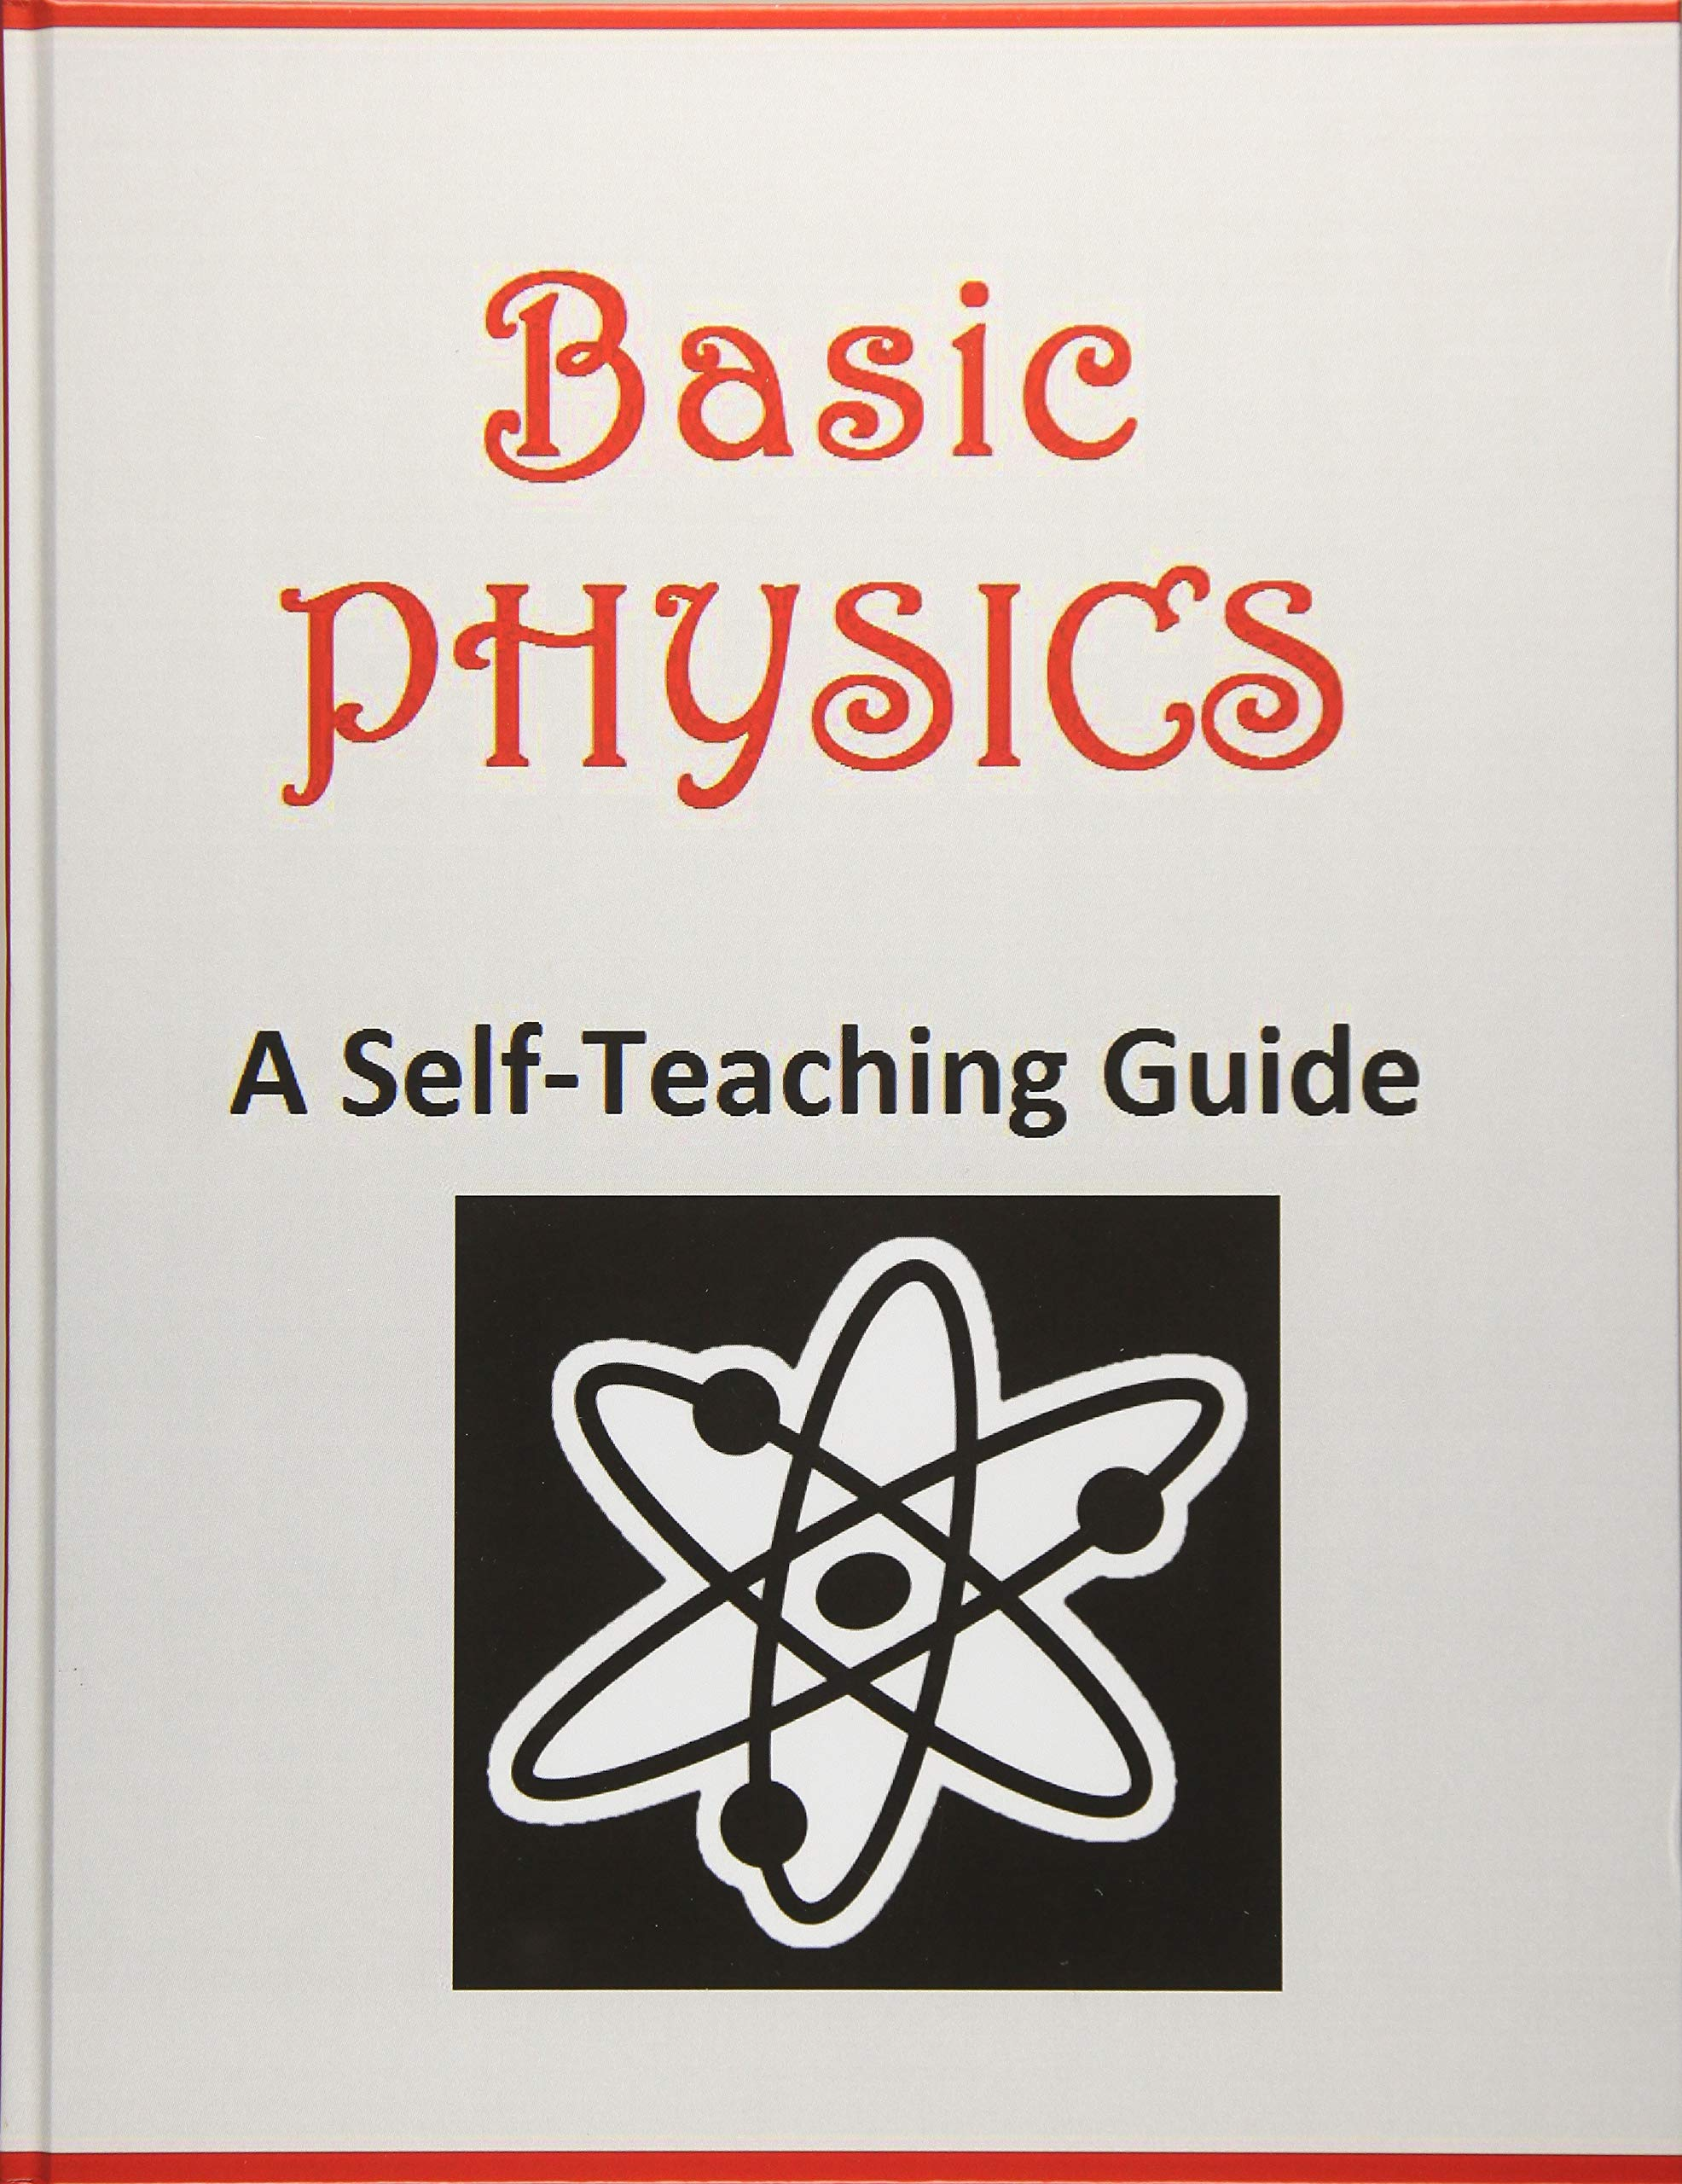 Basic Physics: A Self-Teaching Guide: K Kuhn: 9781948117807: Amazon.com:  Books